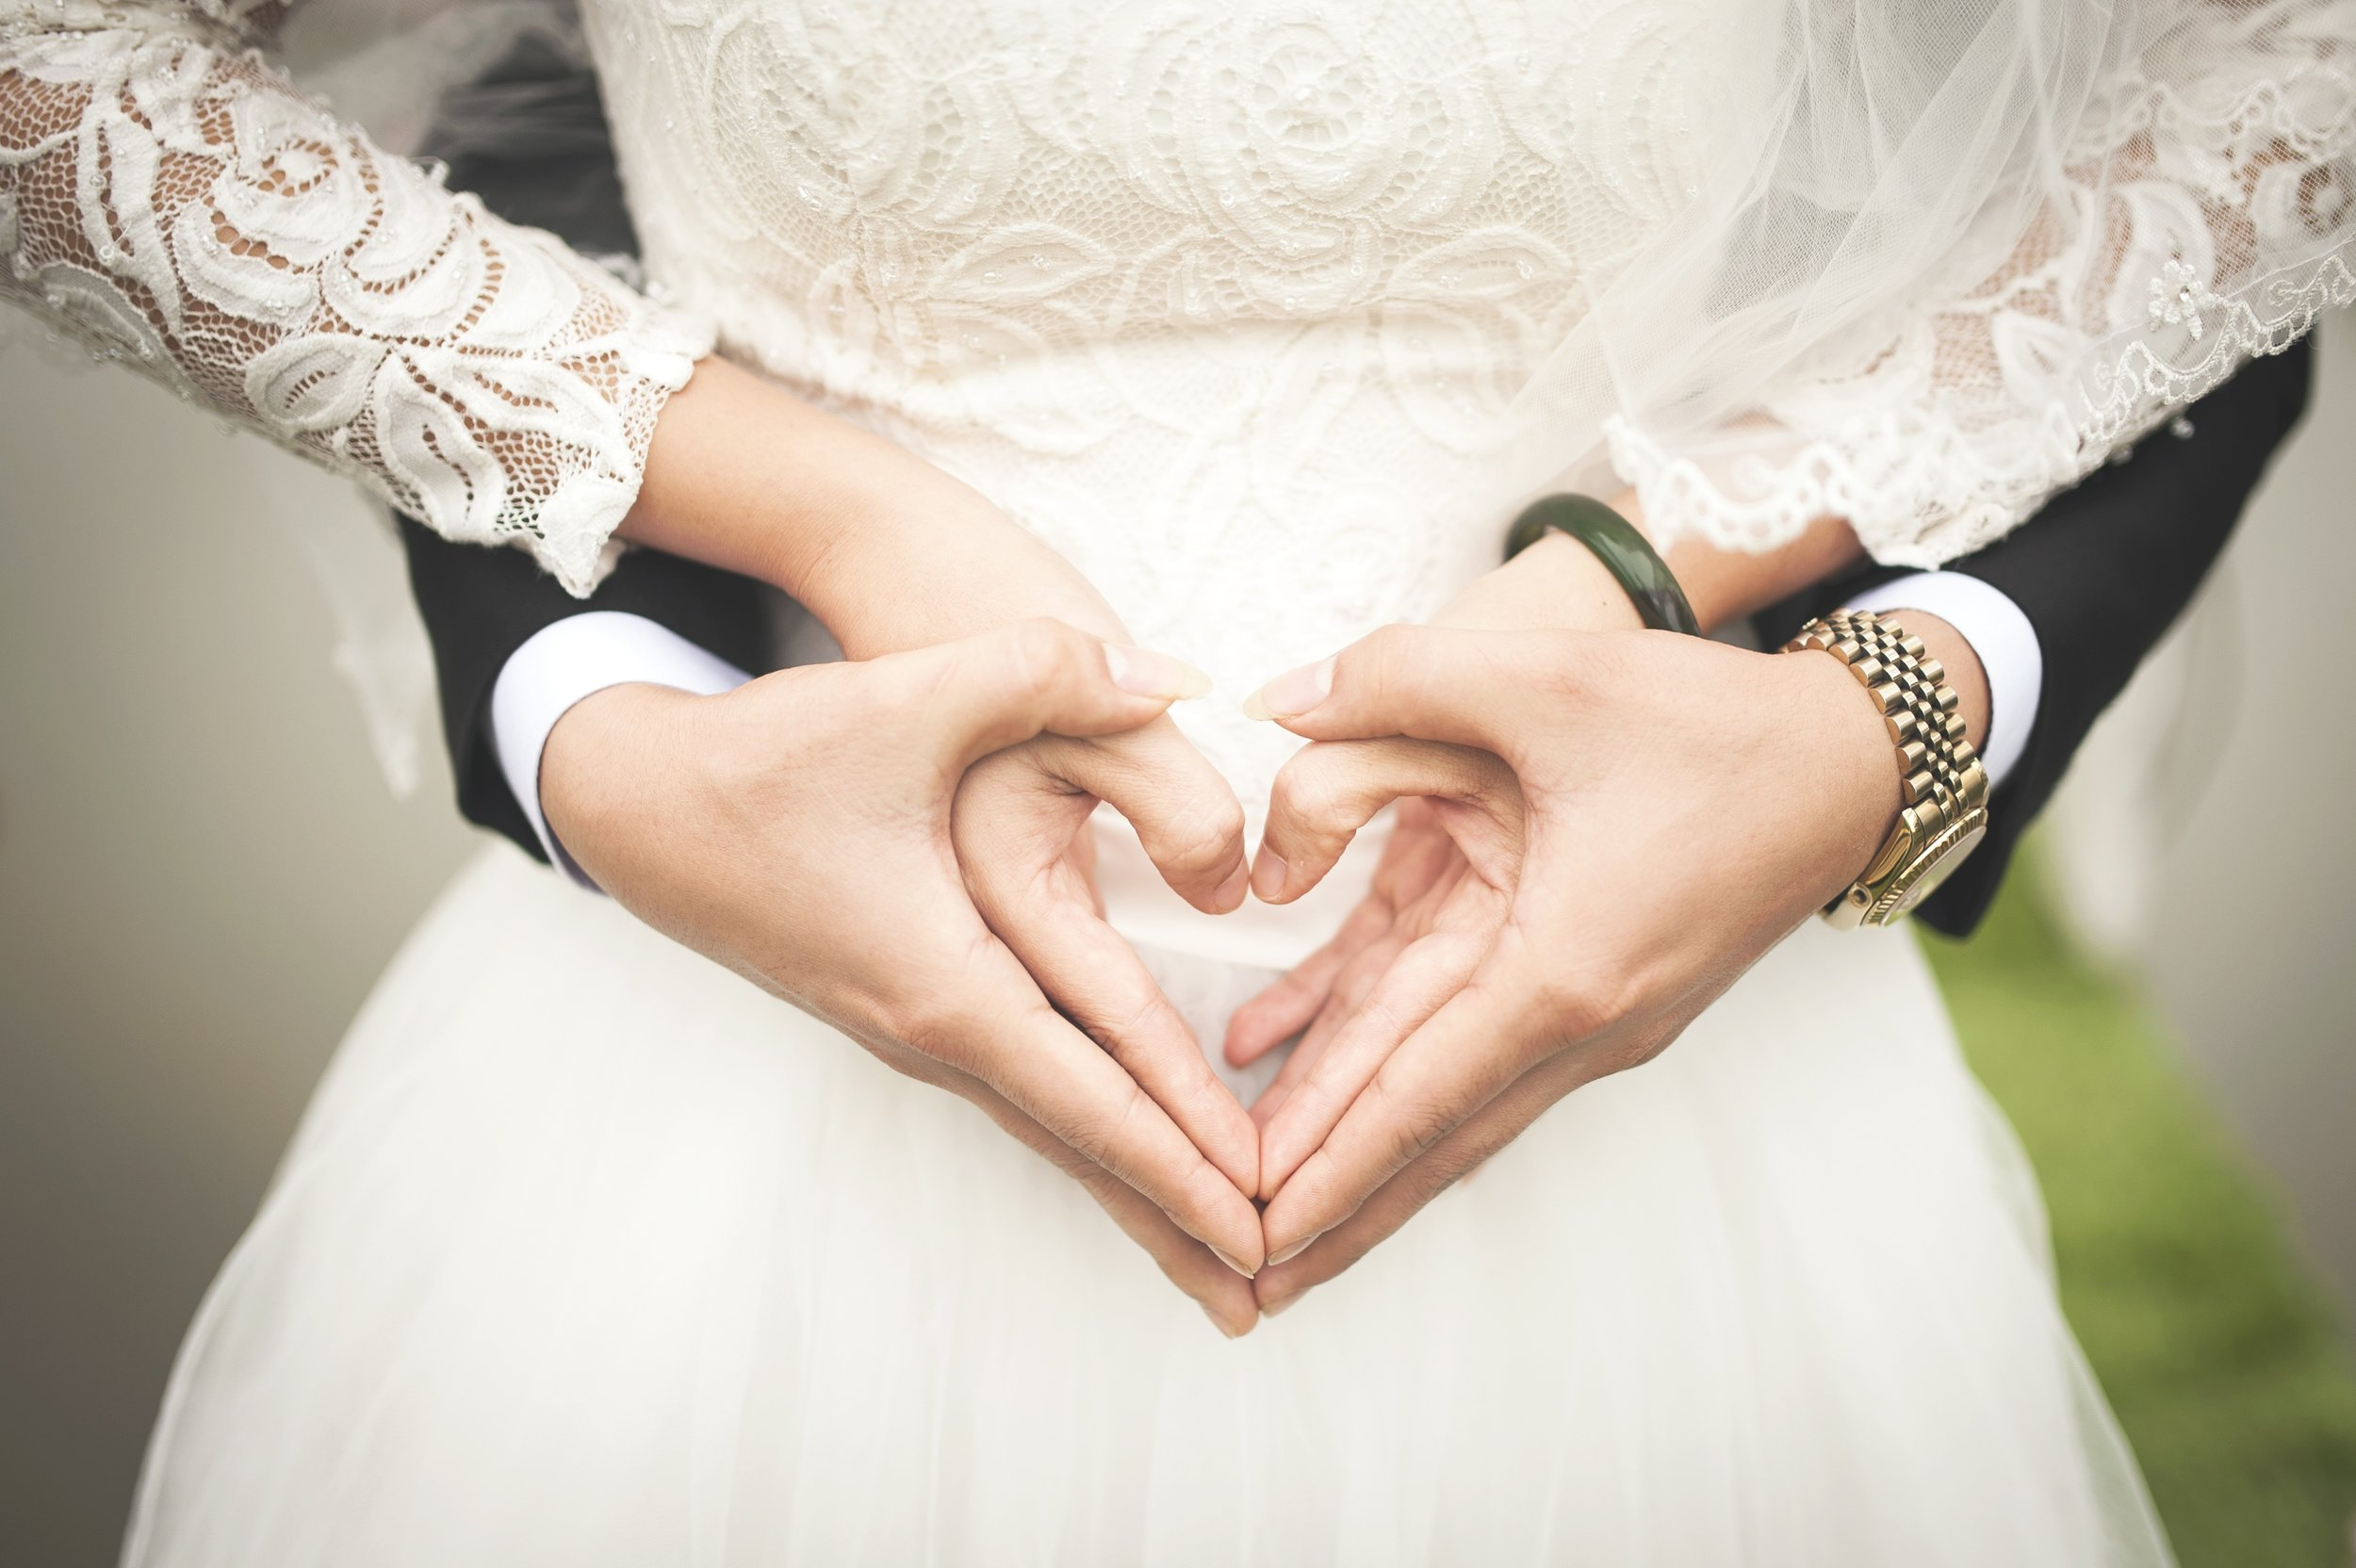 Relationship - Relating to others in ways to communicate understanding, love, and acceptance.